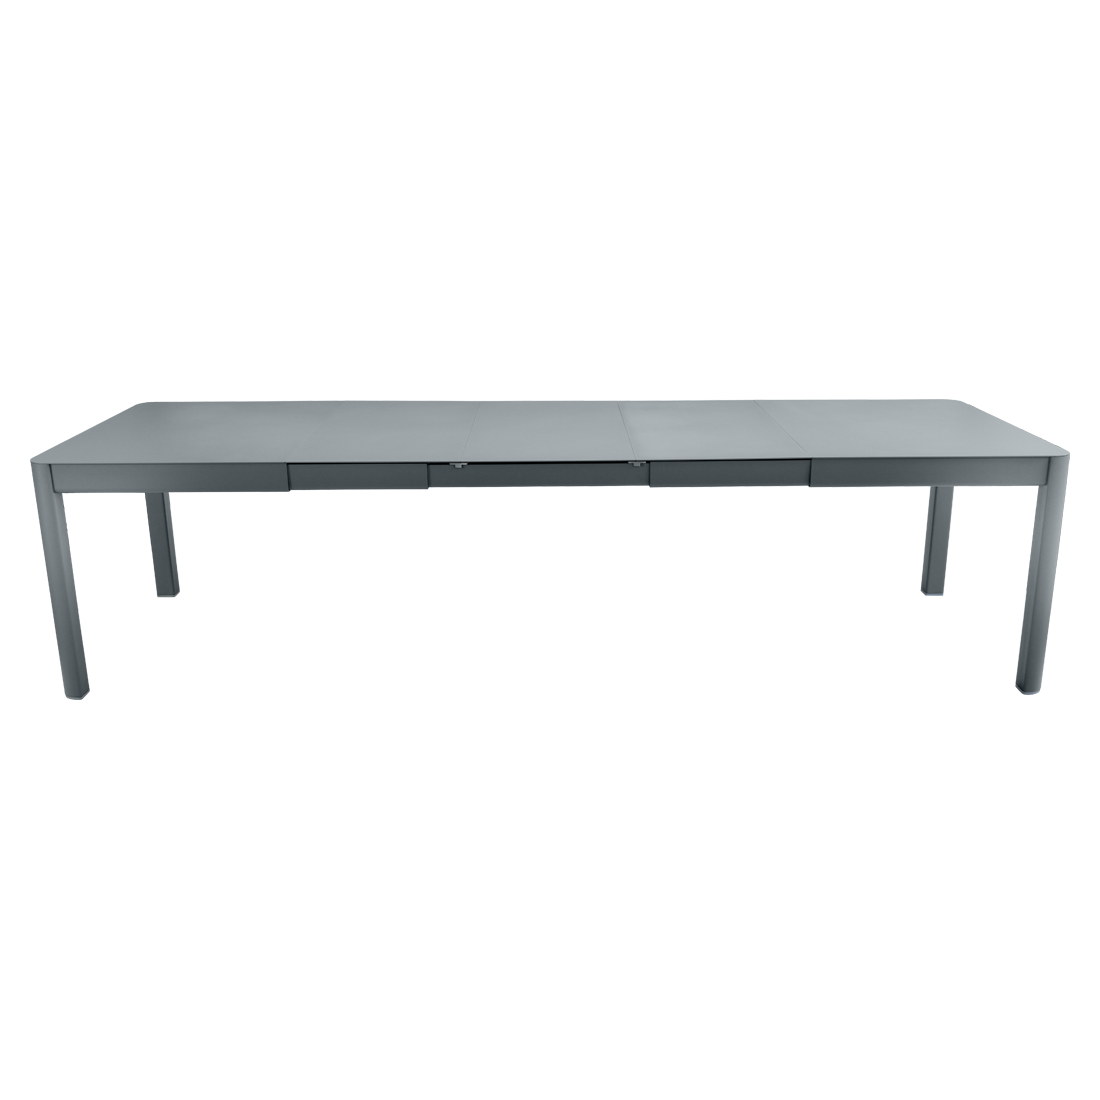 table de jardin grise, table metal allonge, table metal a rallonge, table metal rectangulaire, table fermob allonge